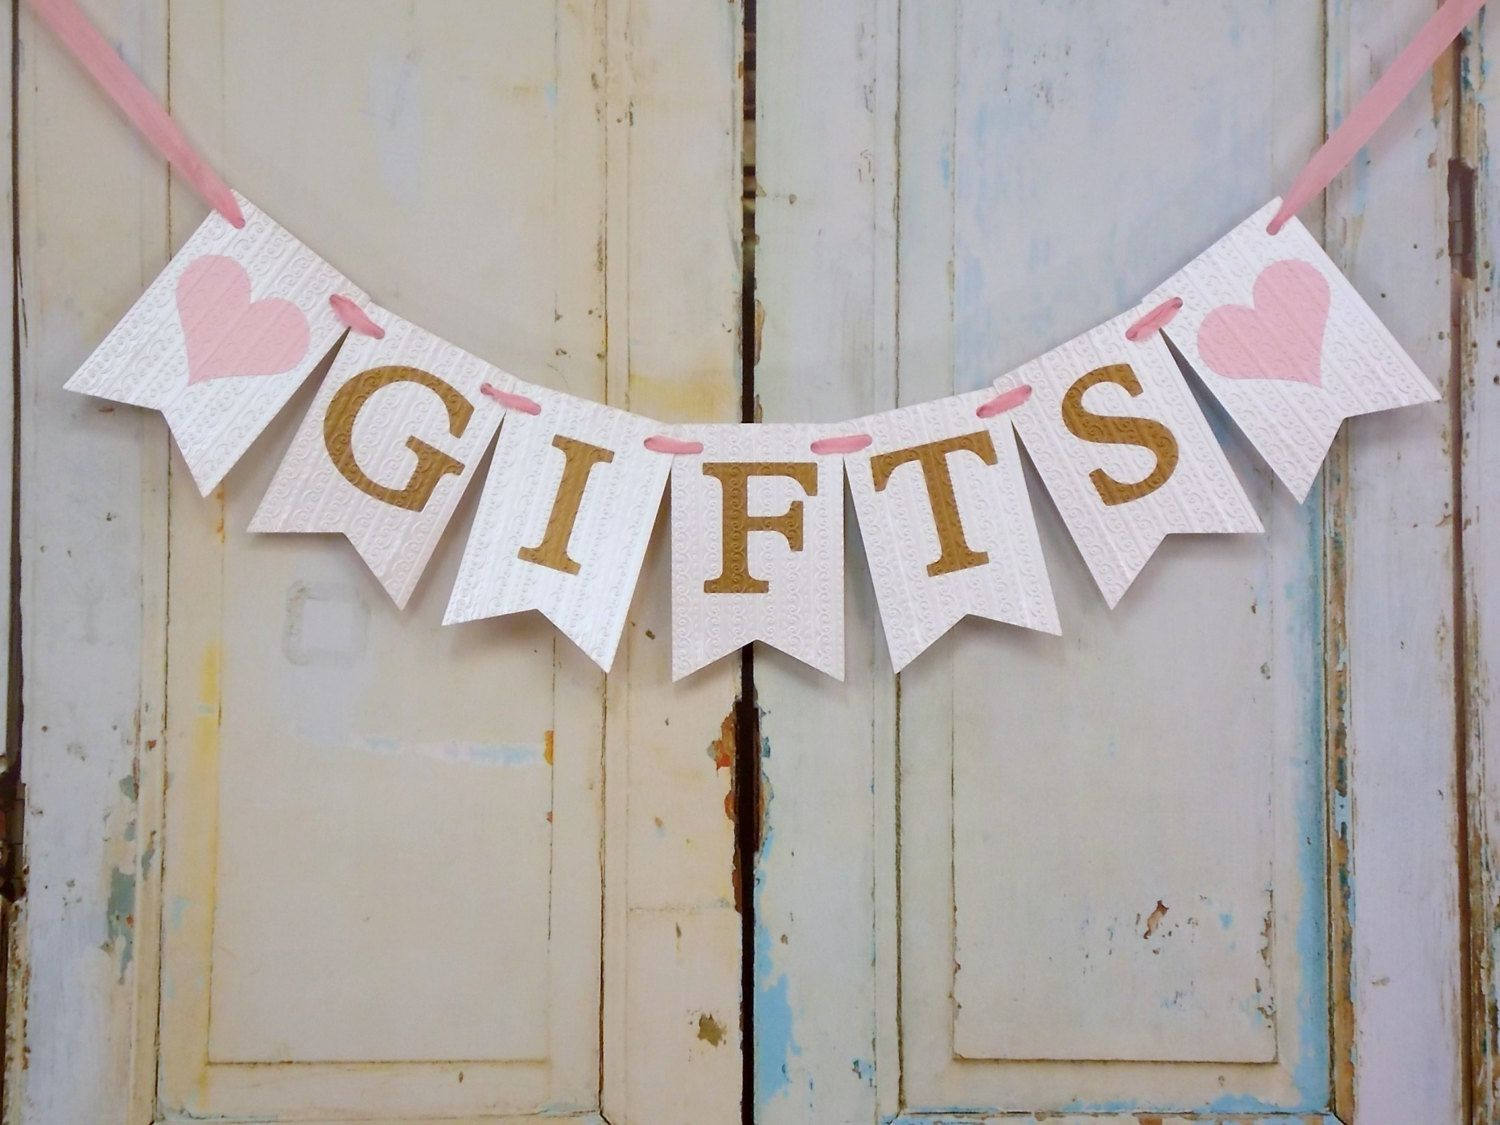 bridal shower themes without gifts%0A Gifts Banner with Hearts  Cream Pink and Gold Banner  Wedding Shower  Banner  Baby Shower Banner  Bridal Shower Decoration  Wedding Decor